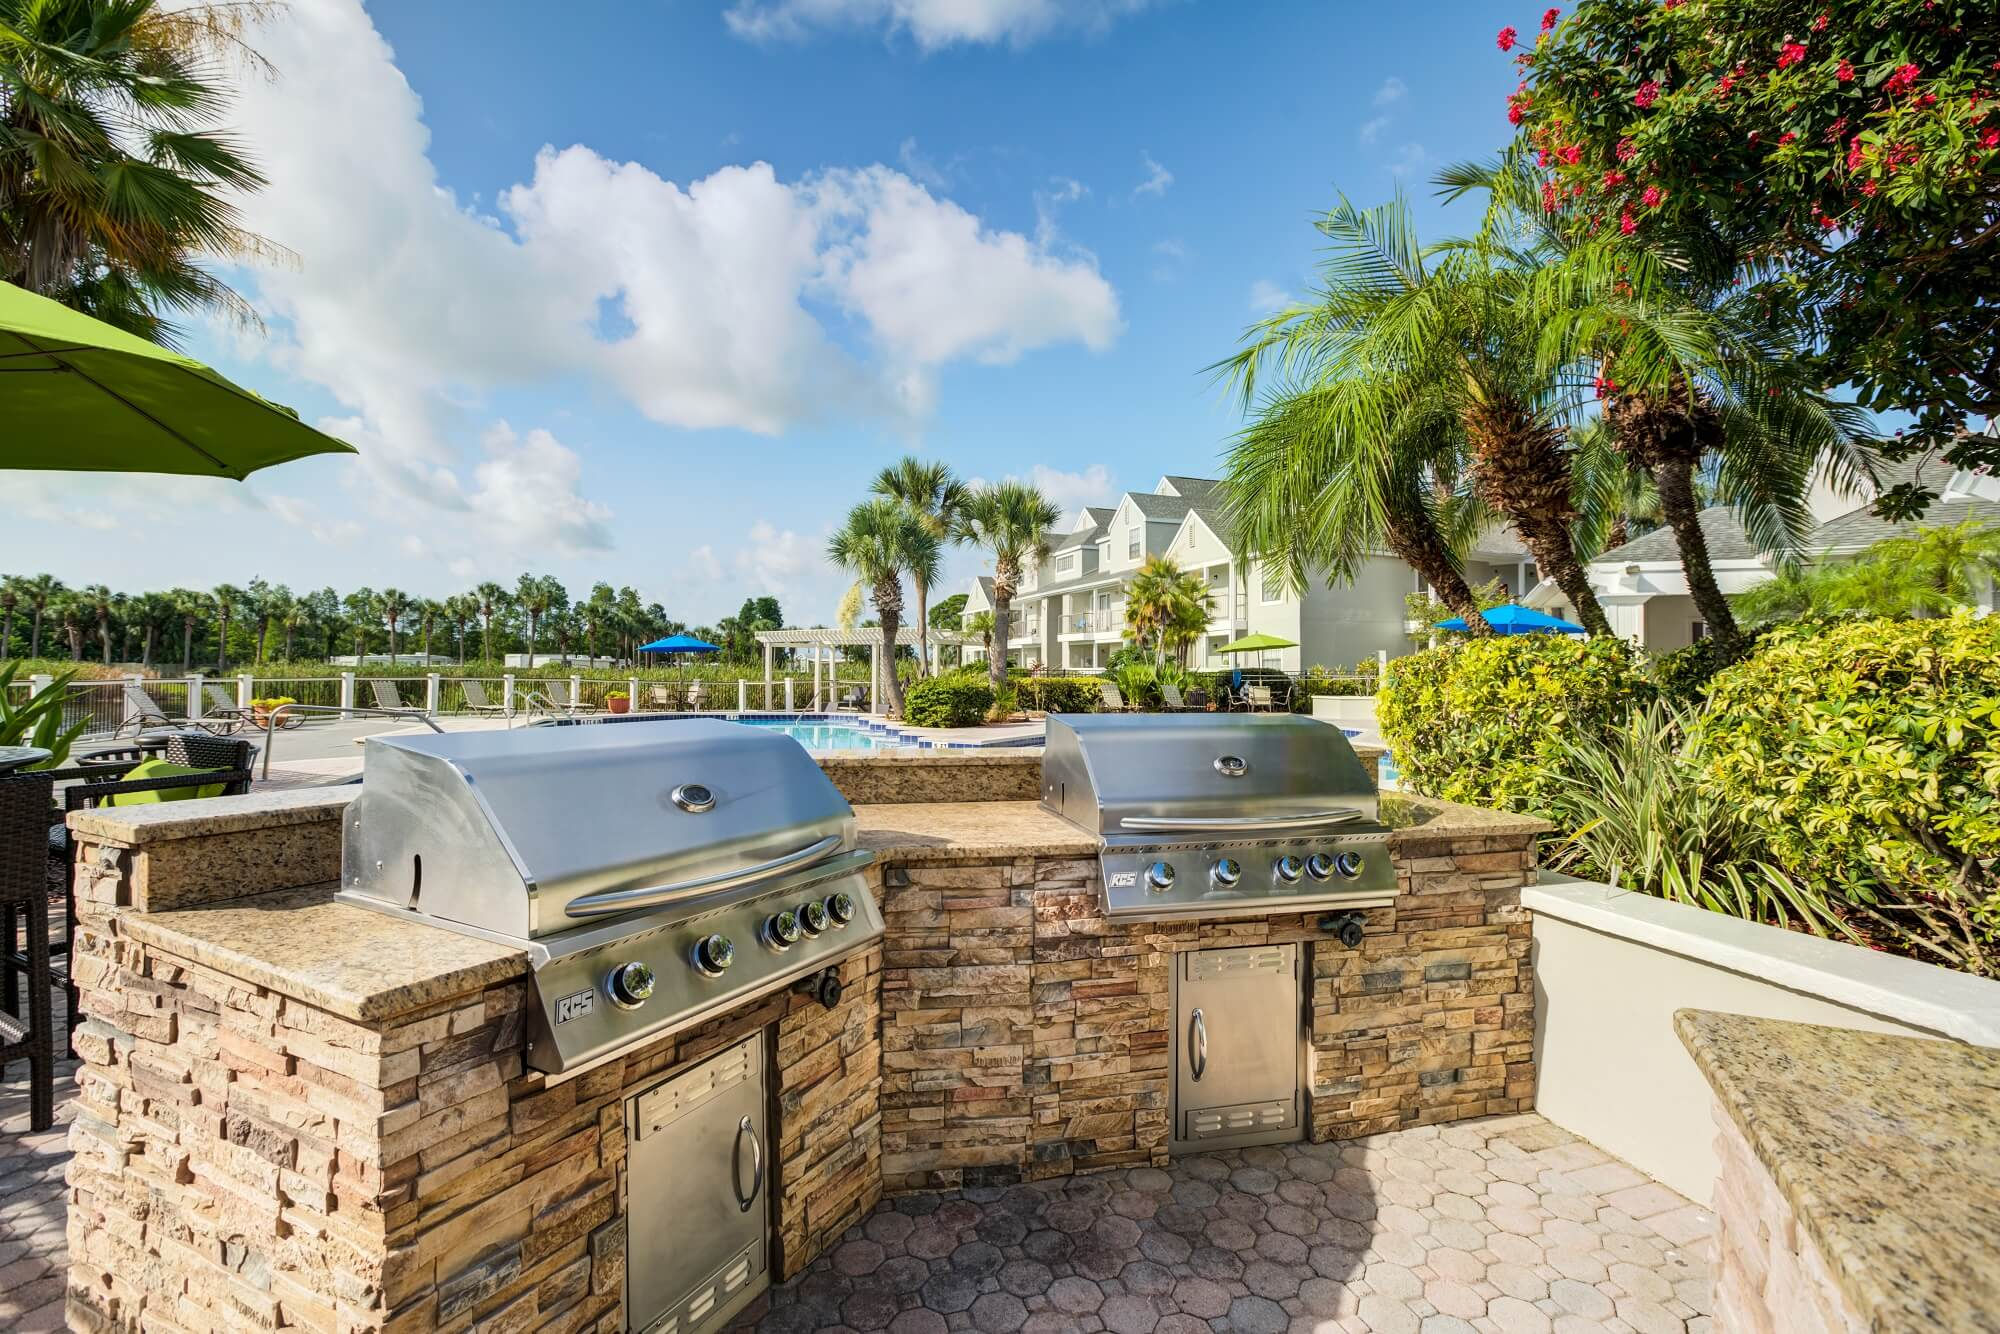 two 4 burner grills with stone countertops near the pool.